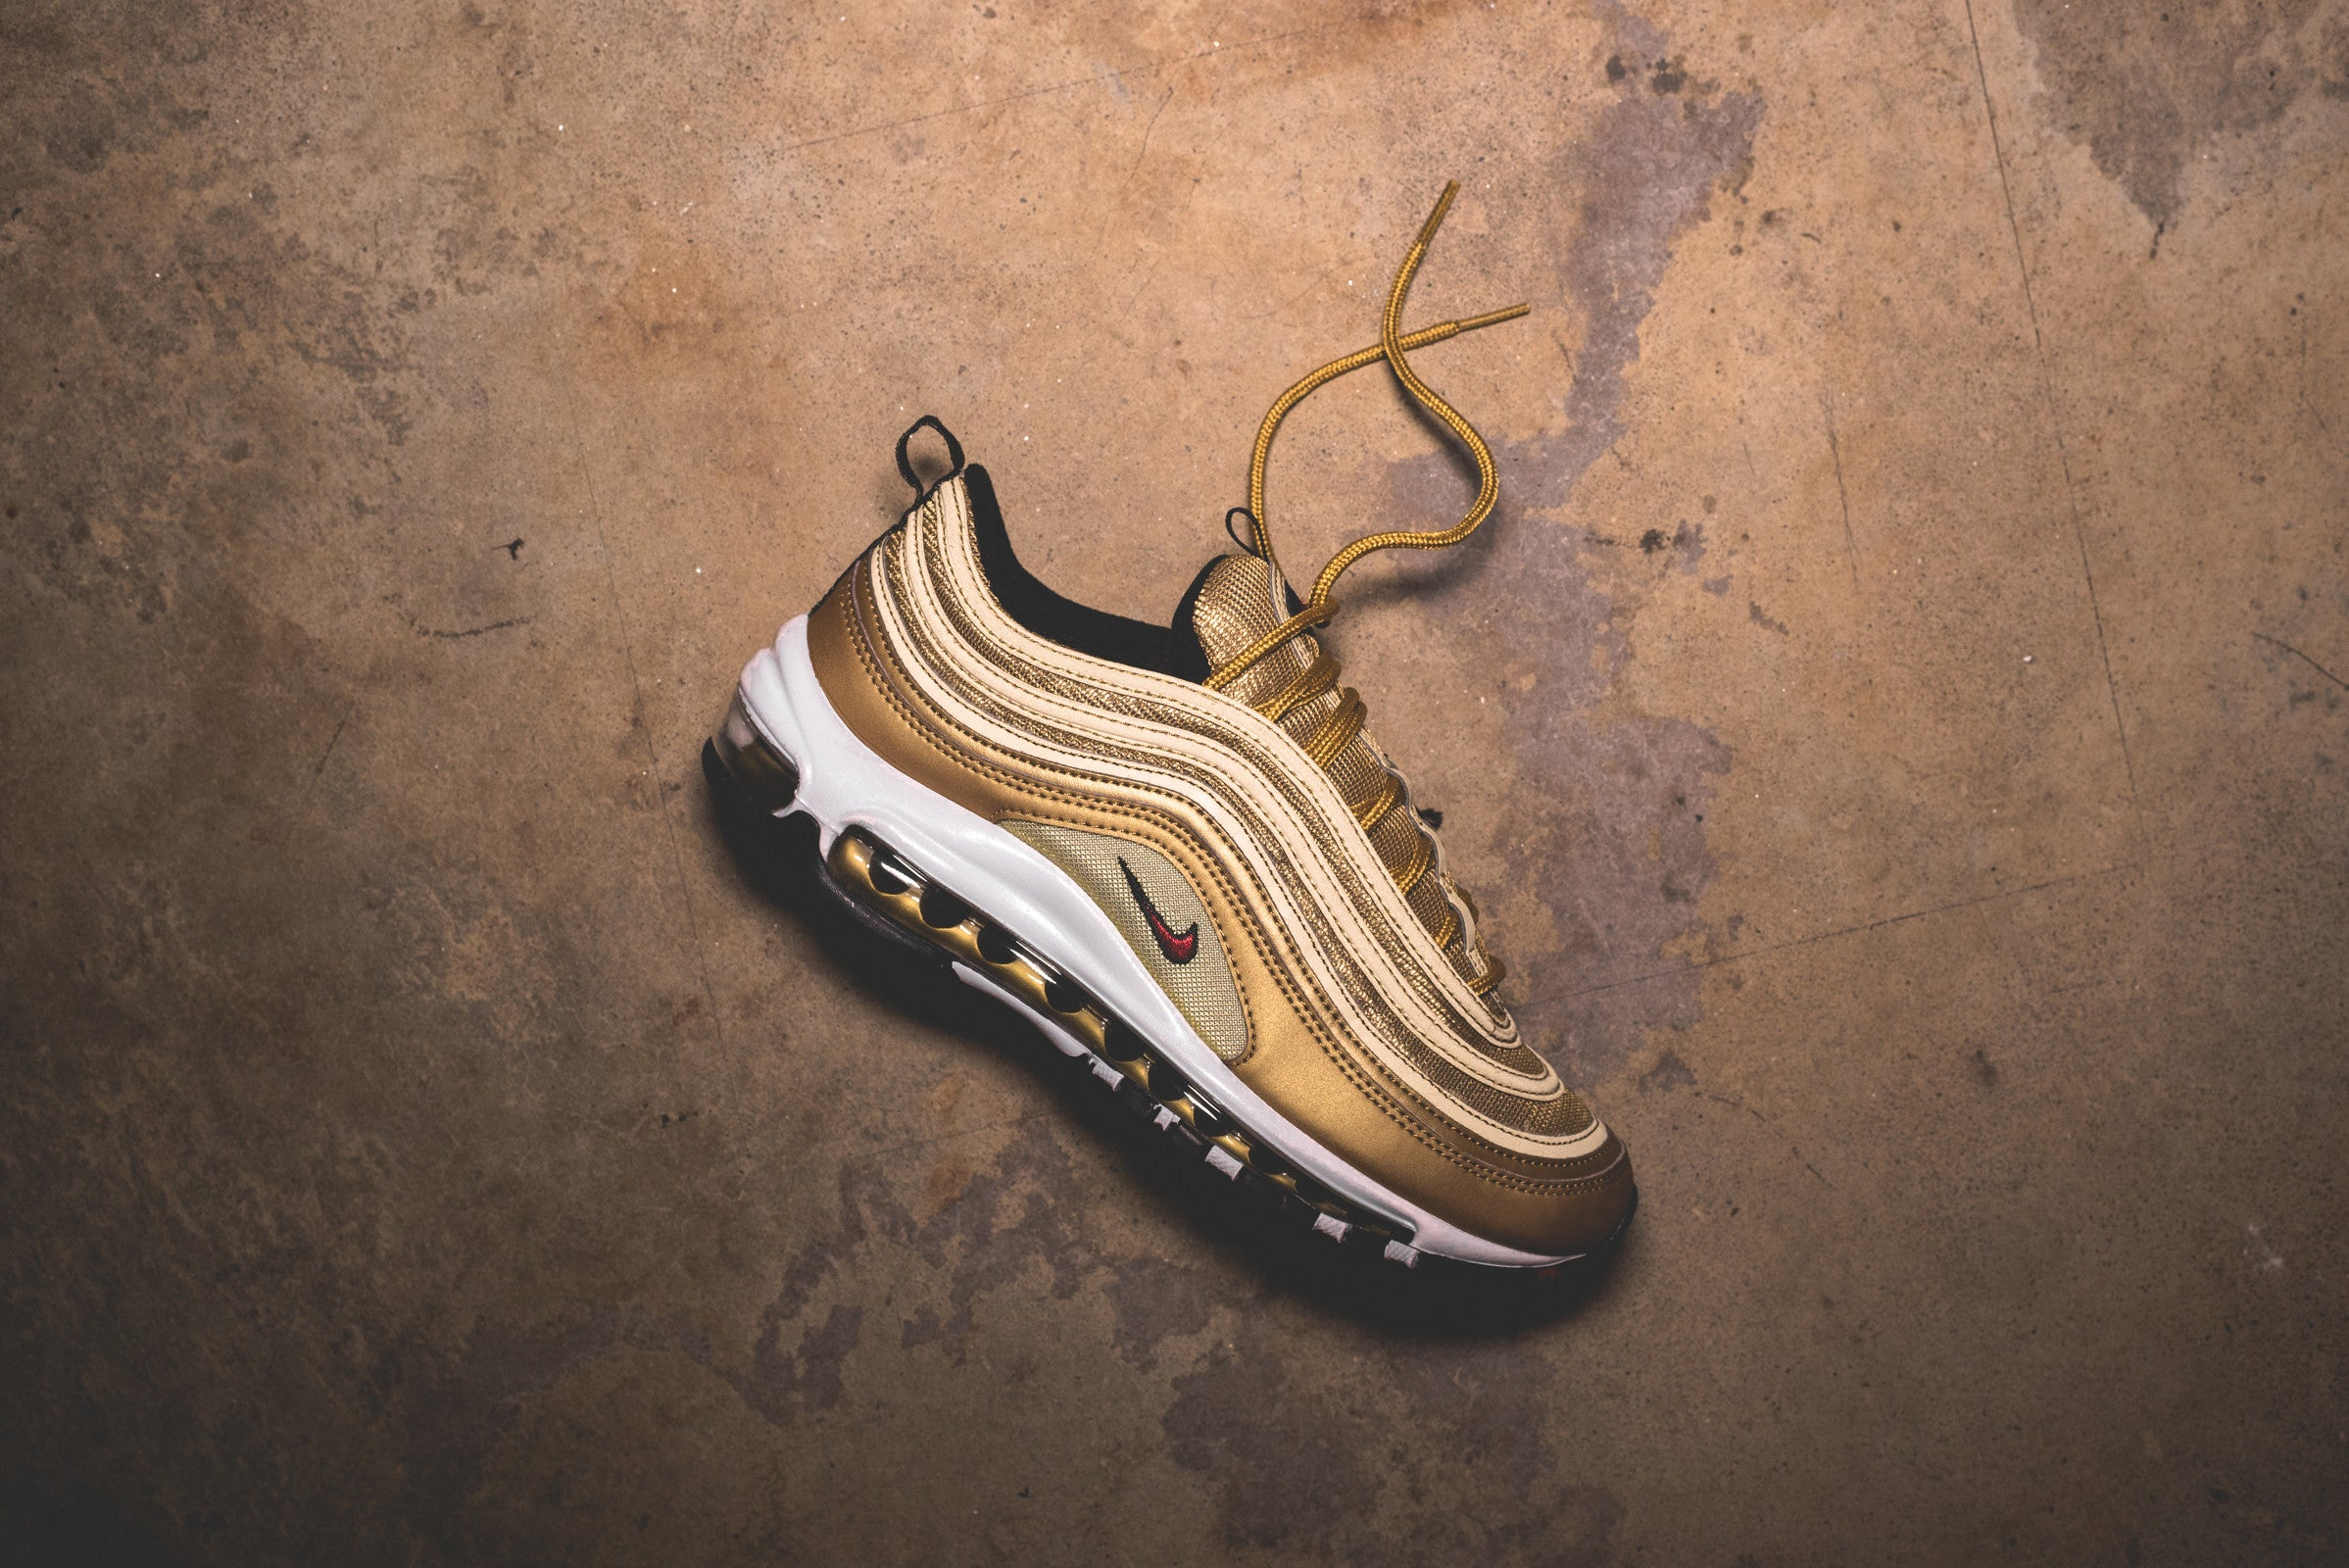 promo code 27173 4248b Nike Air Max 97 OG QS - Metallic Gold / Varsity Red / White ...